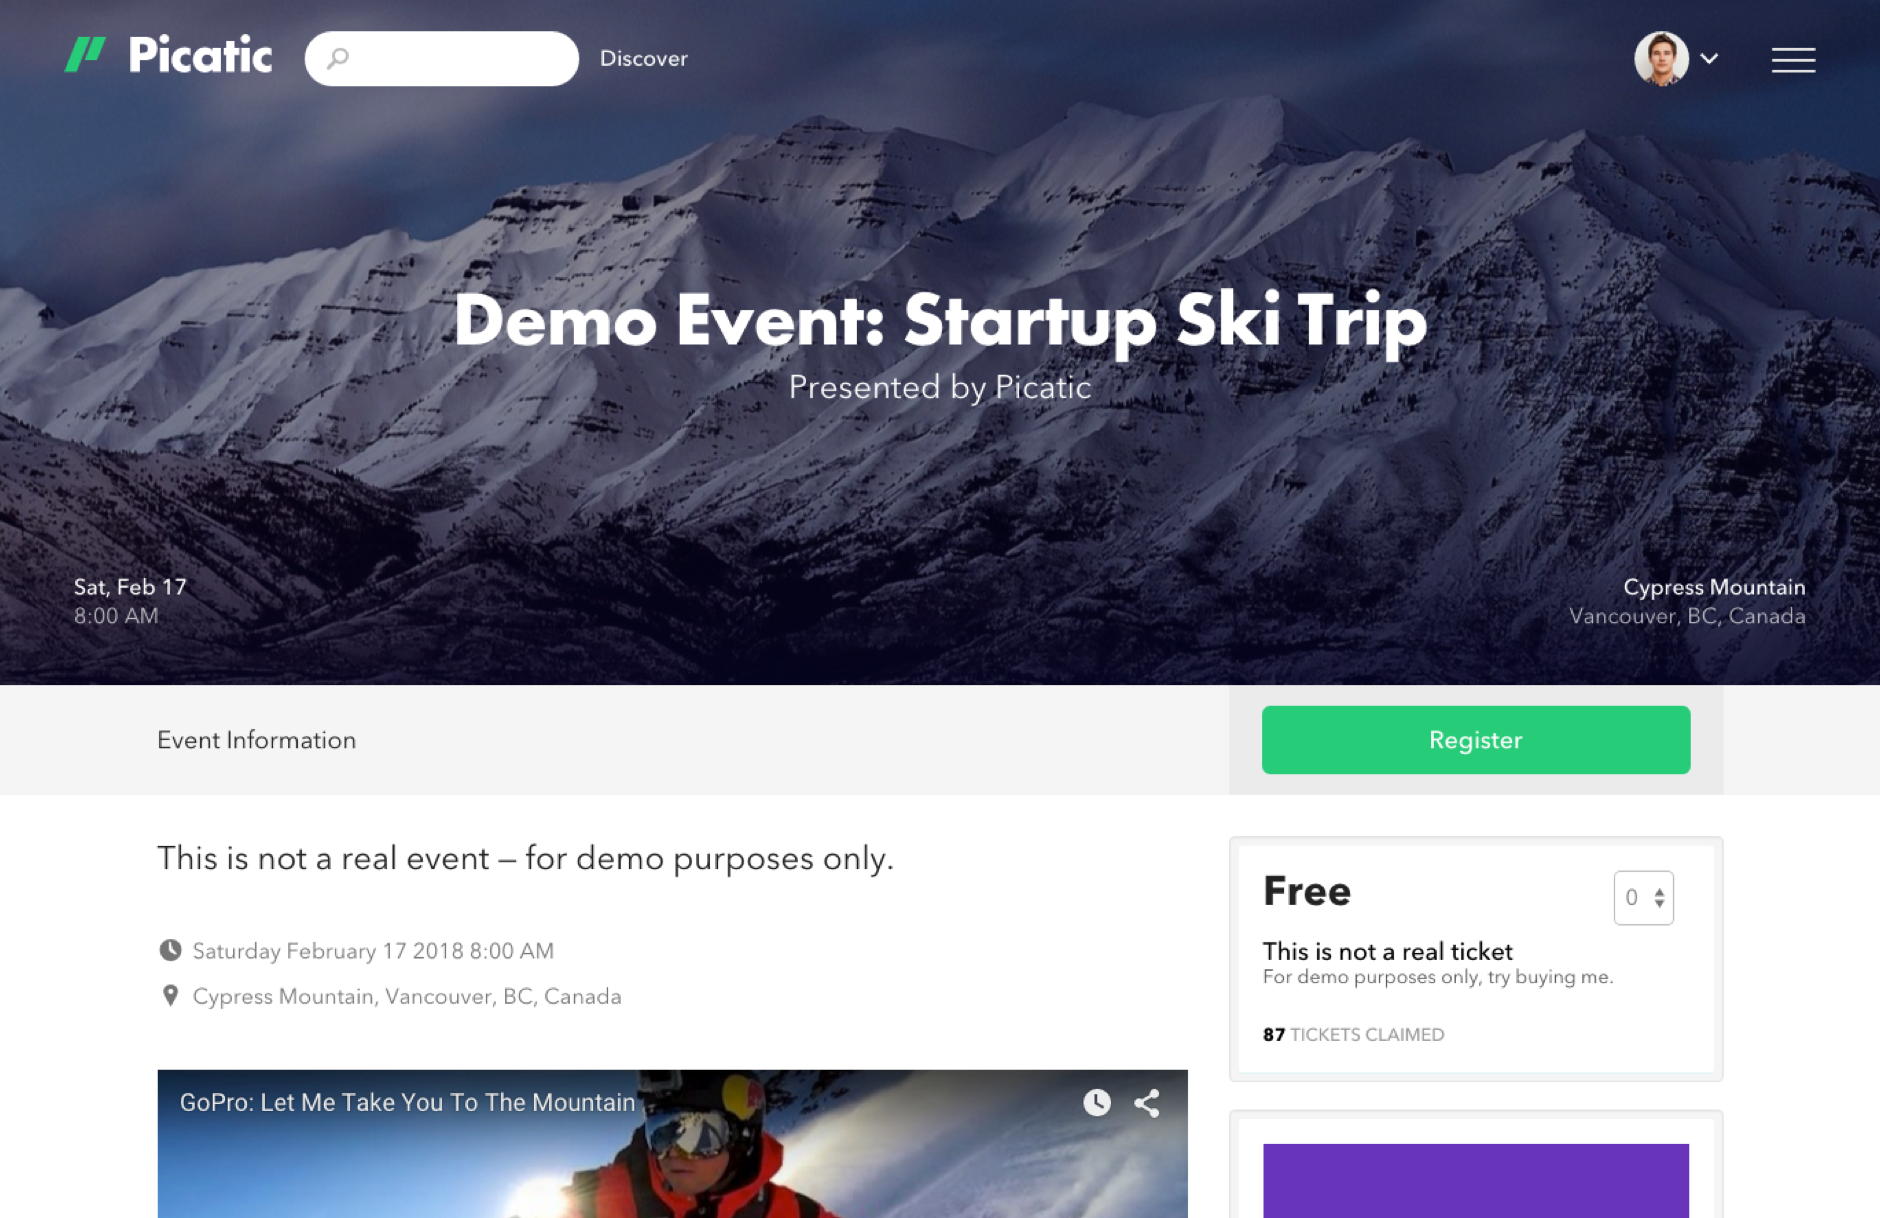 Picatic Event Pages. Promote your unique event page link and sell tickets or collect registrations.